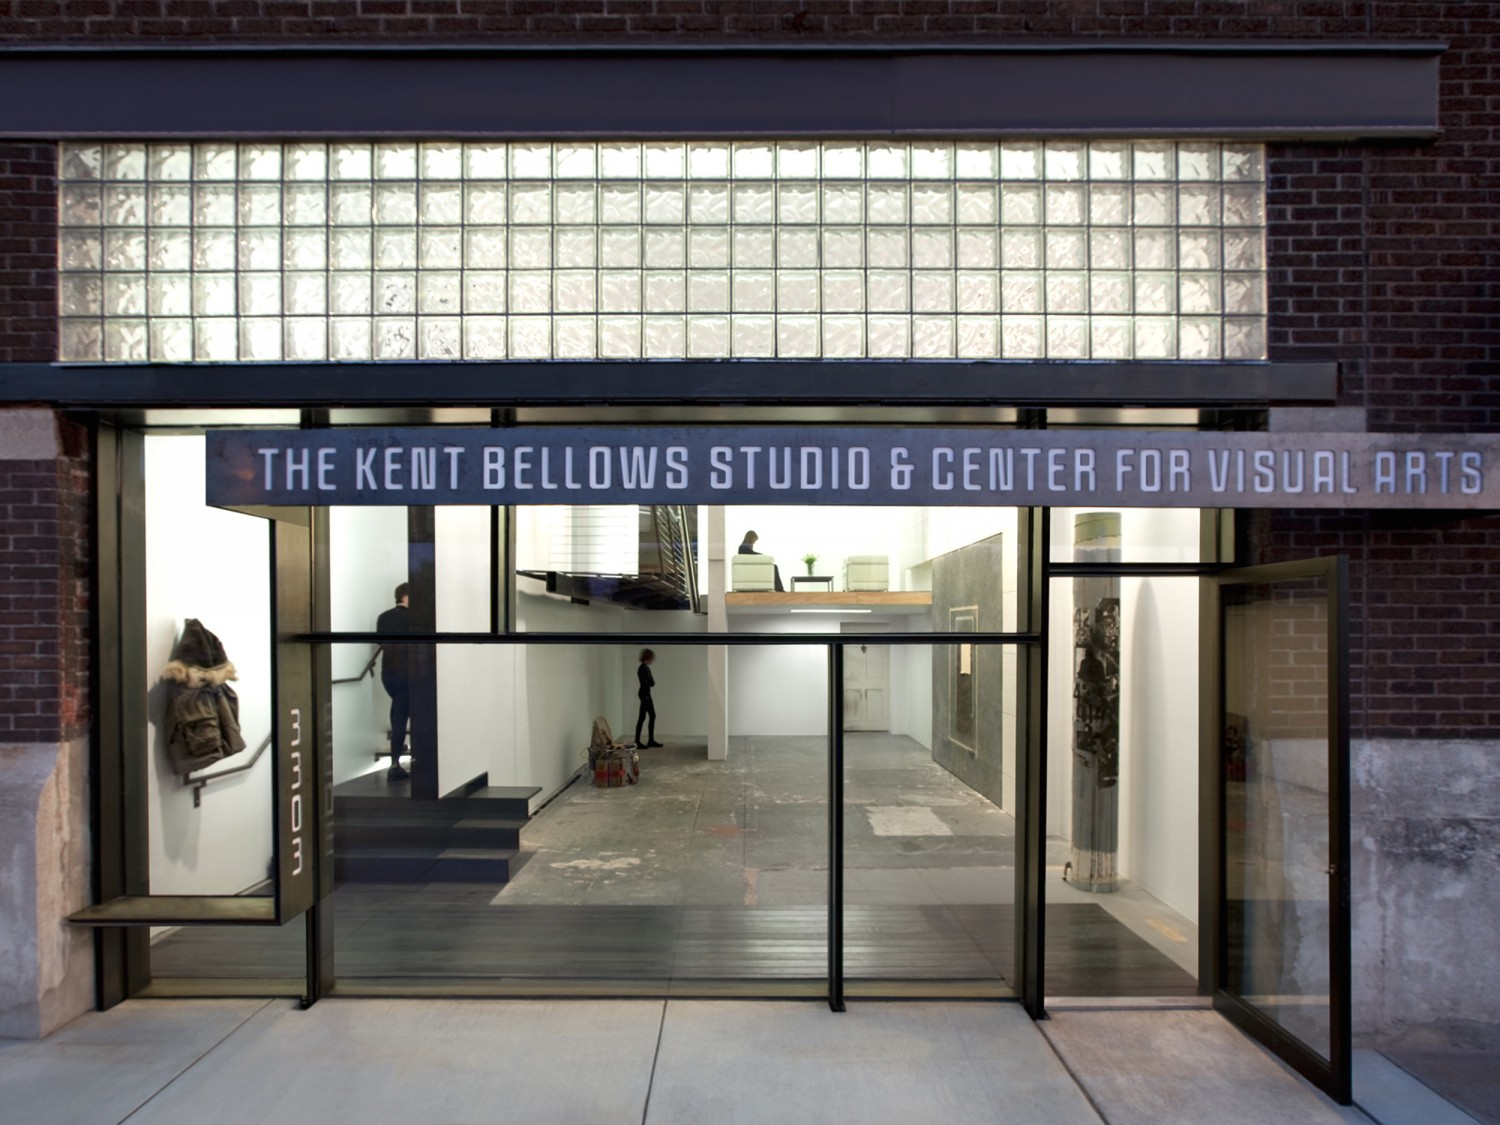 Kent Bellows Studio